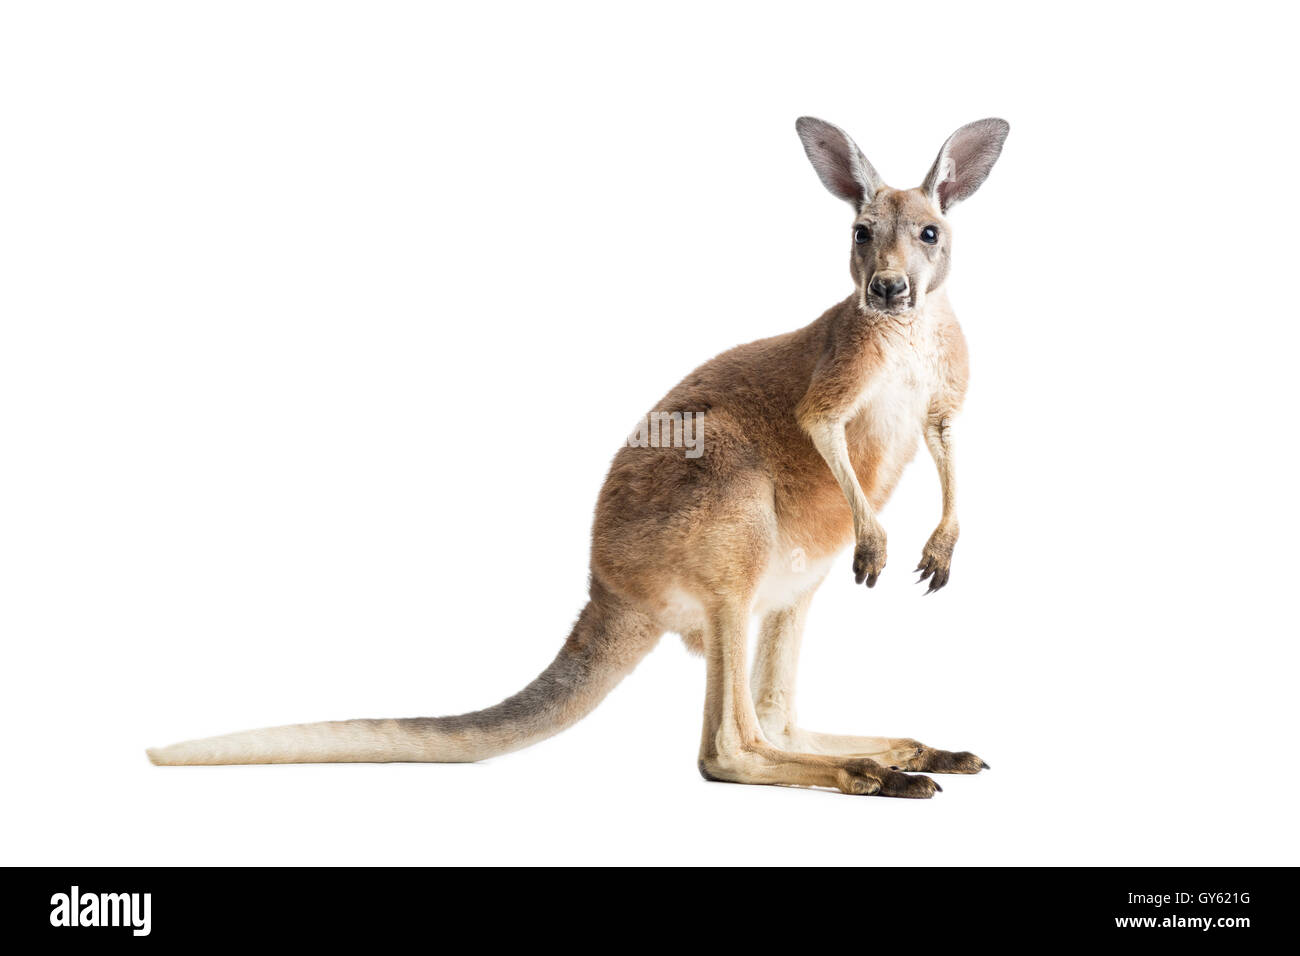 Kangaroo cut out stock images pictures alamy - Image kangourou ...